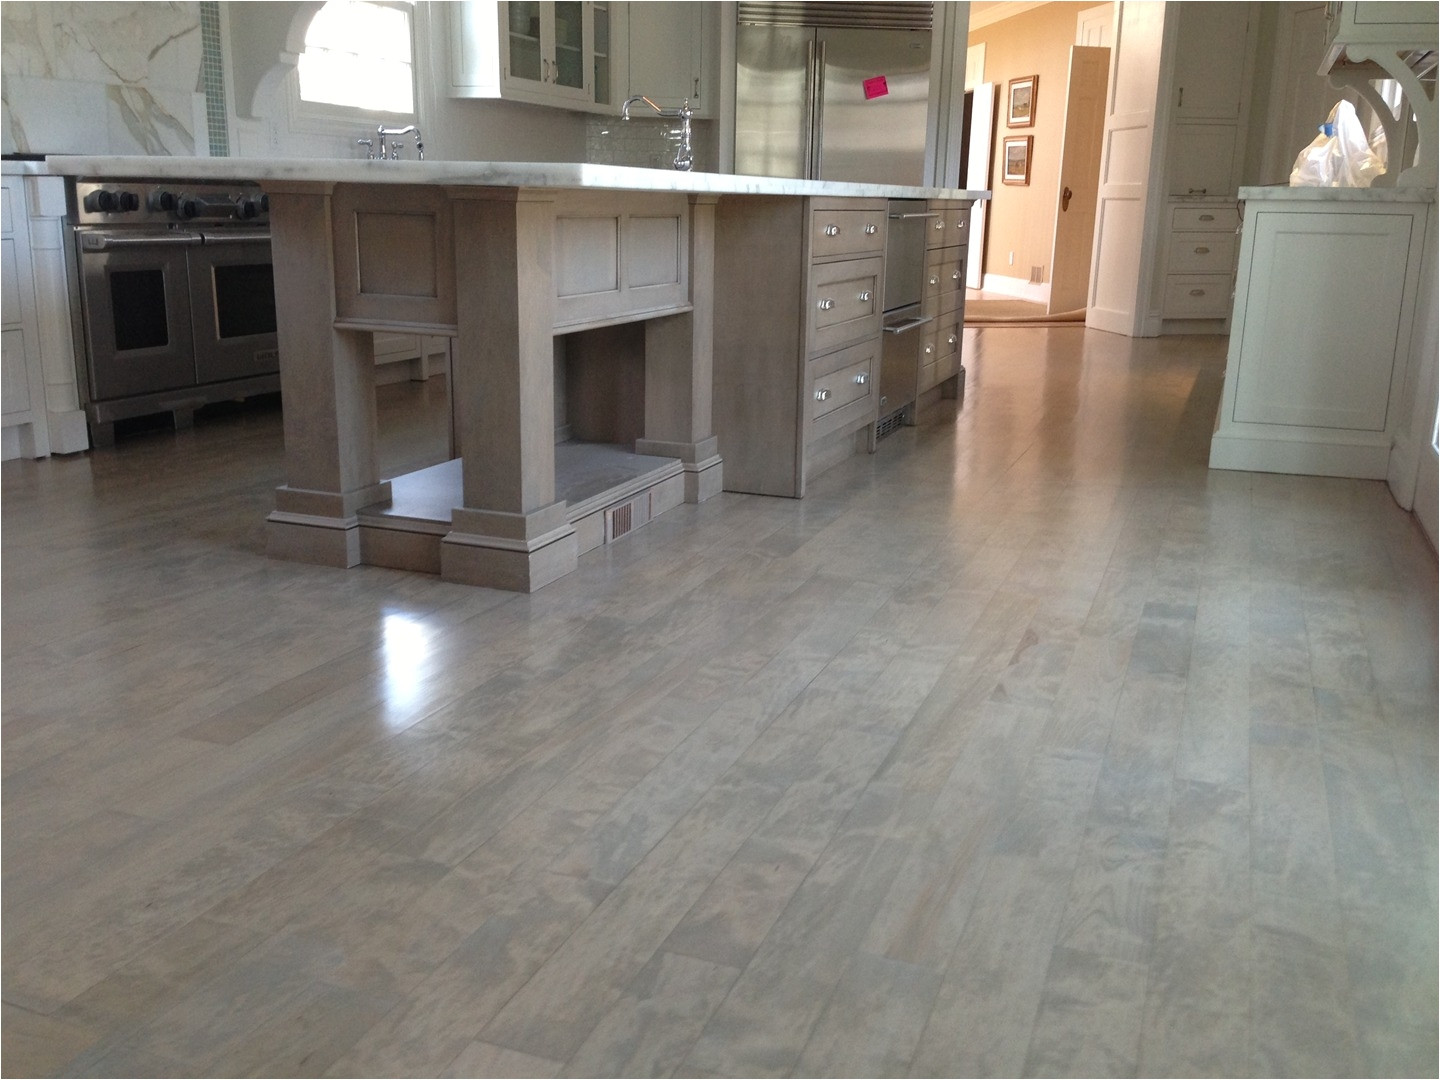 Red Oak Hardwood Flooring Pictures Of Gray Stained Wood Floors J R Hardwood Floors L L C Home Regarding Gray Stained Wood Floors J R Hardwood Floors L L C Home